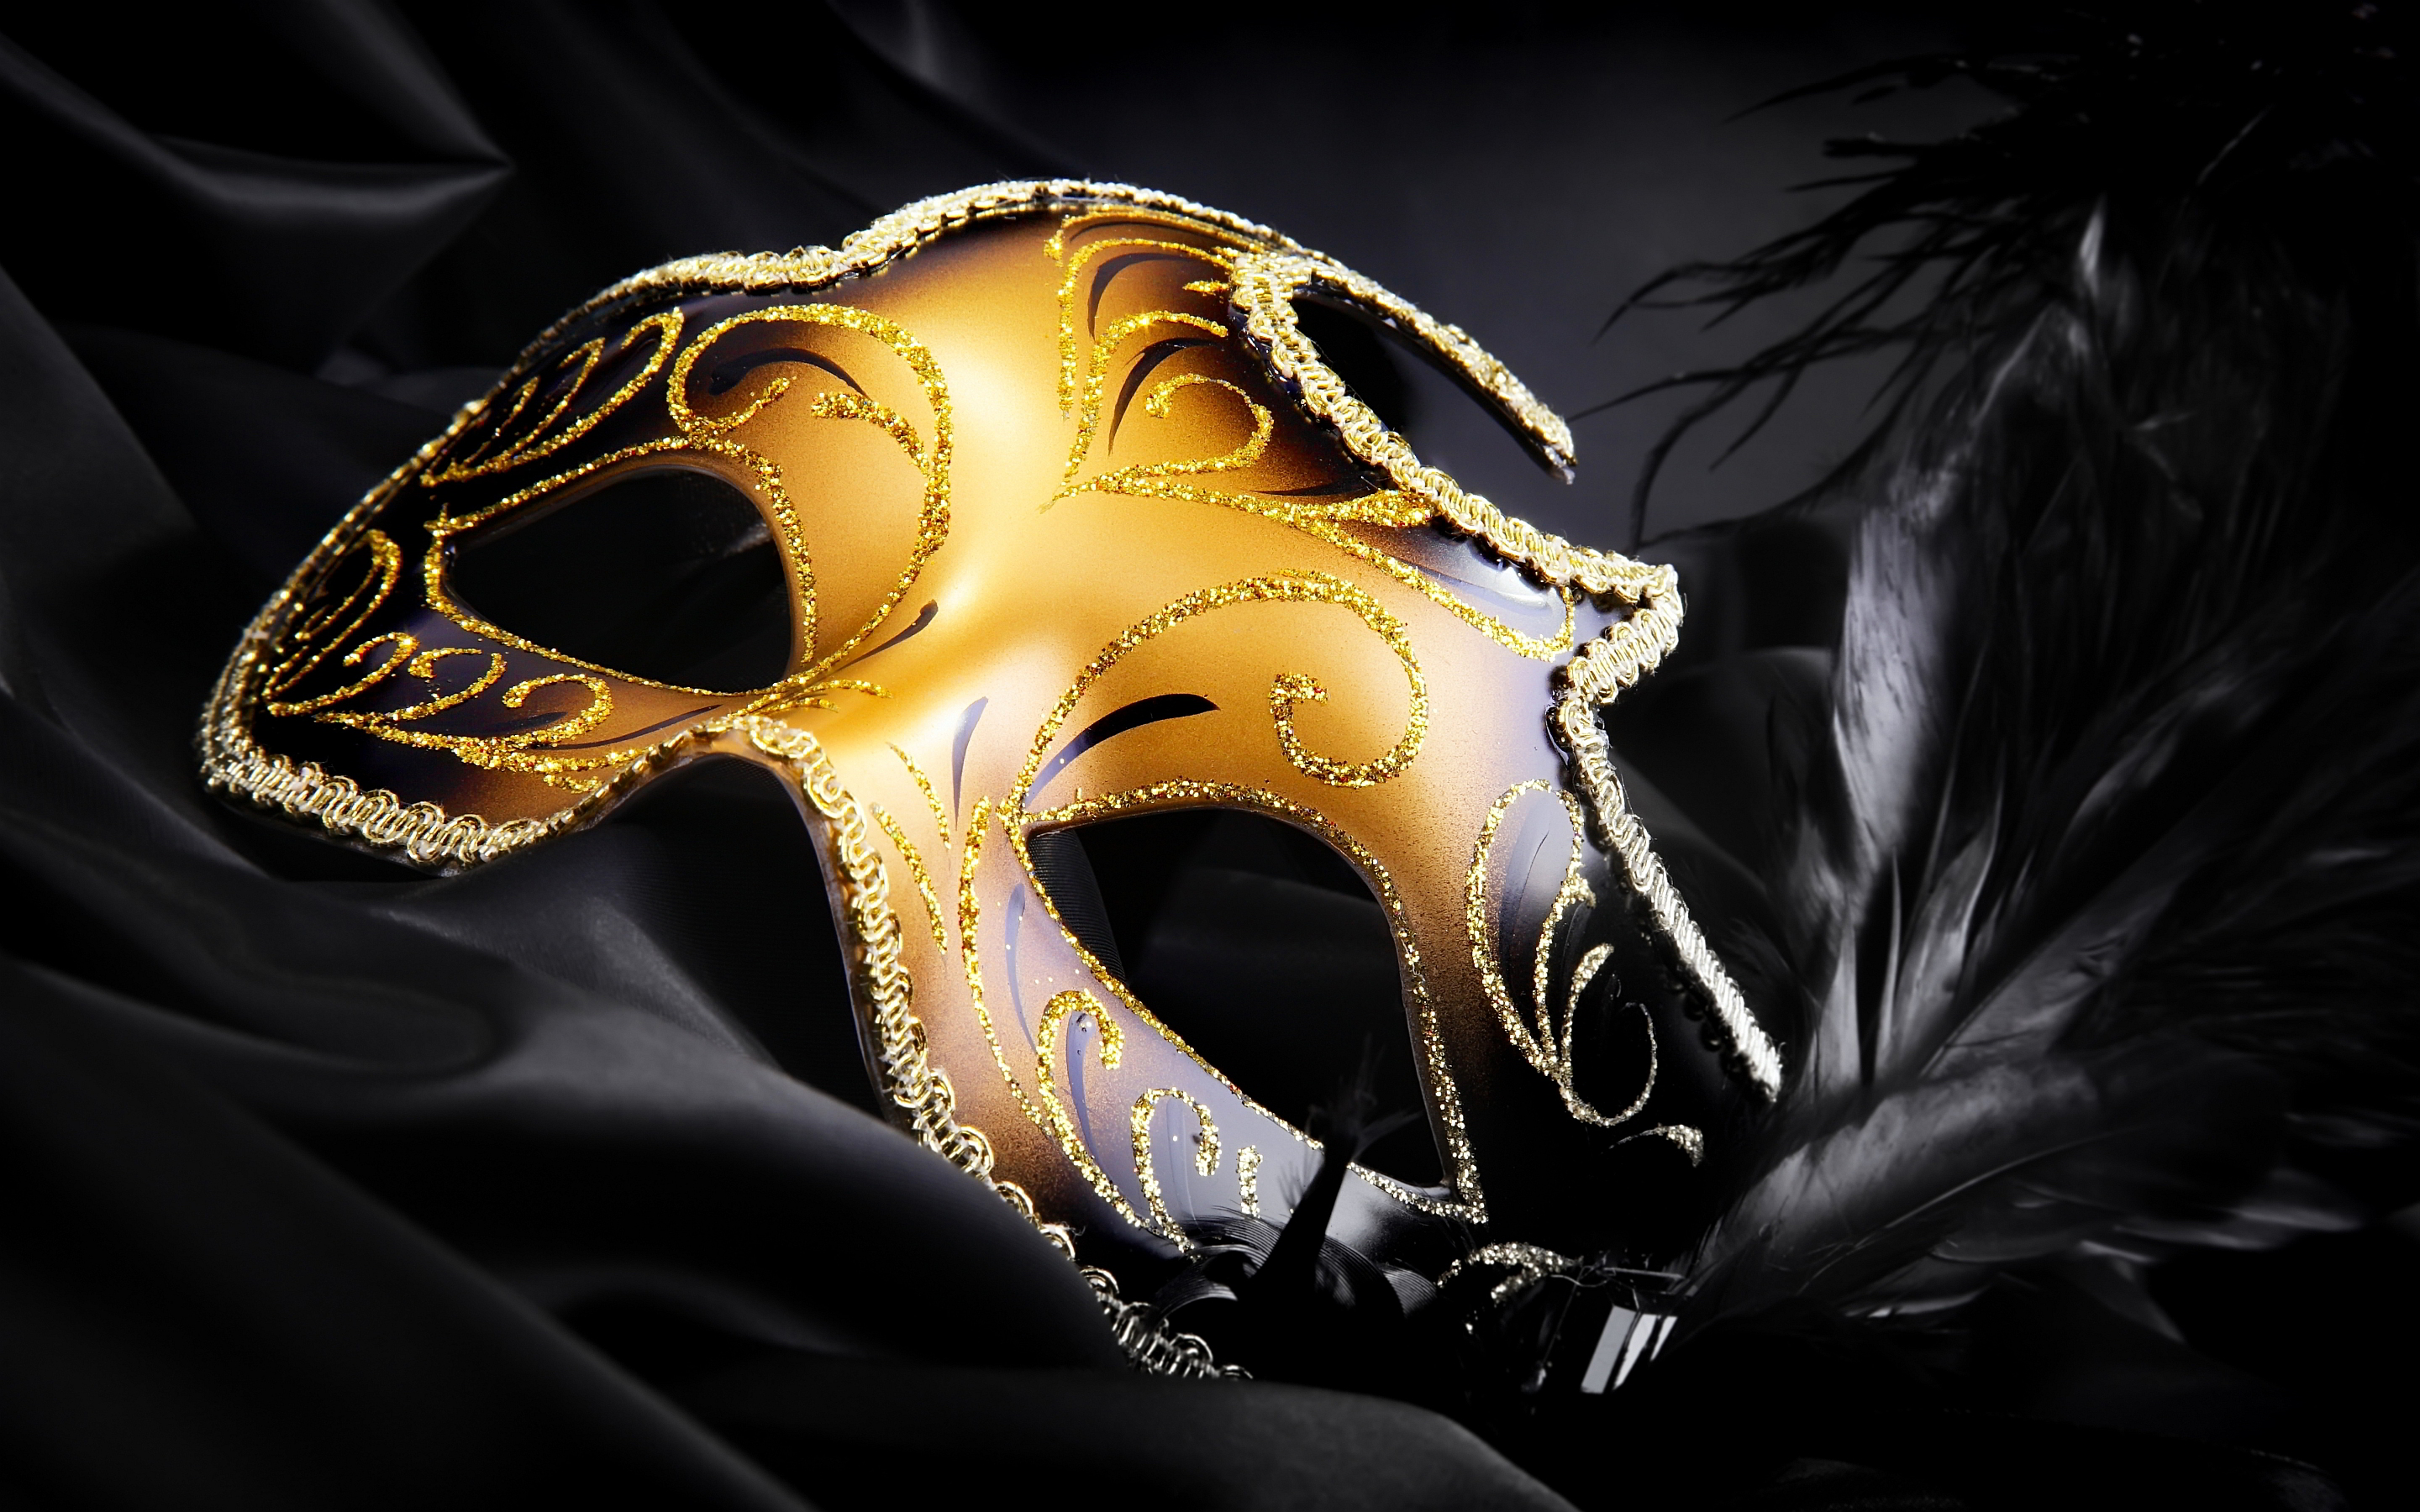 4k carnival mask wallpapers high quality download free